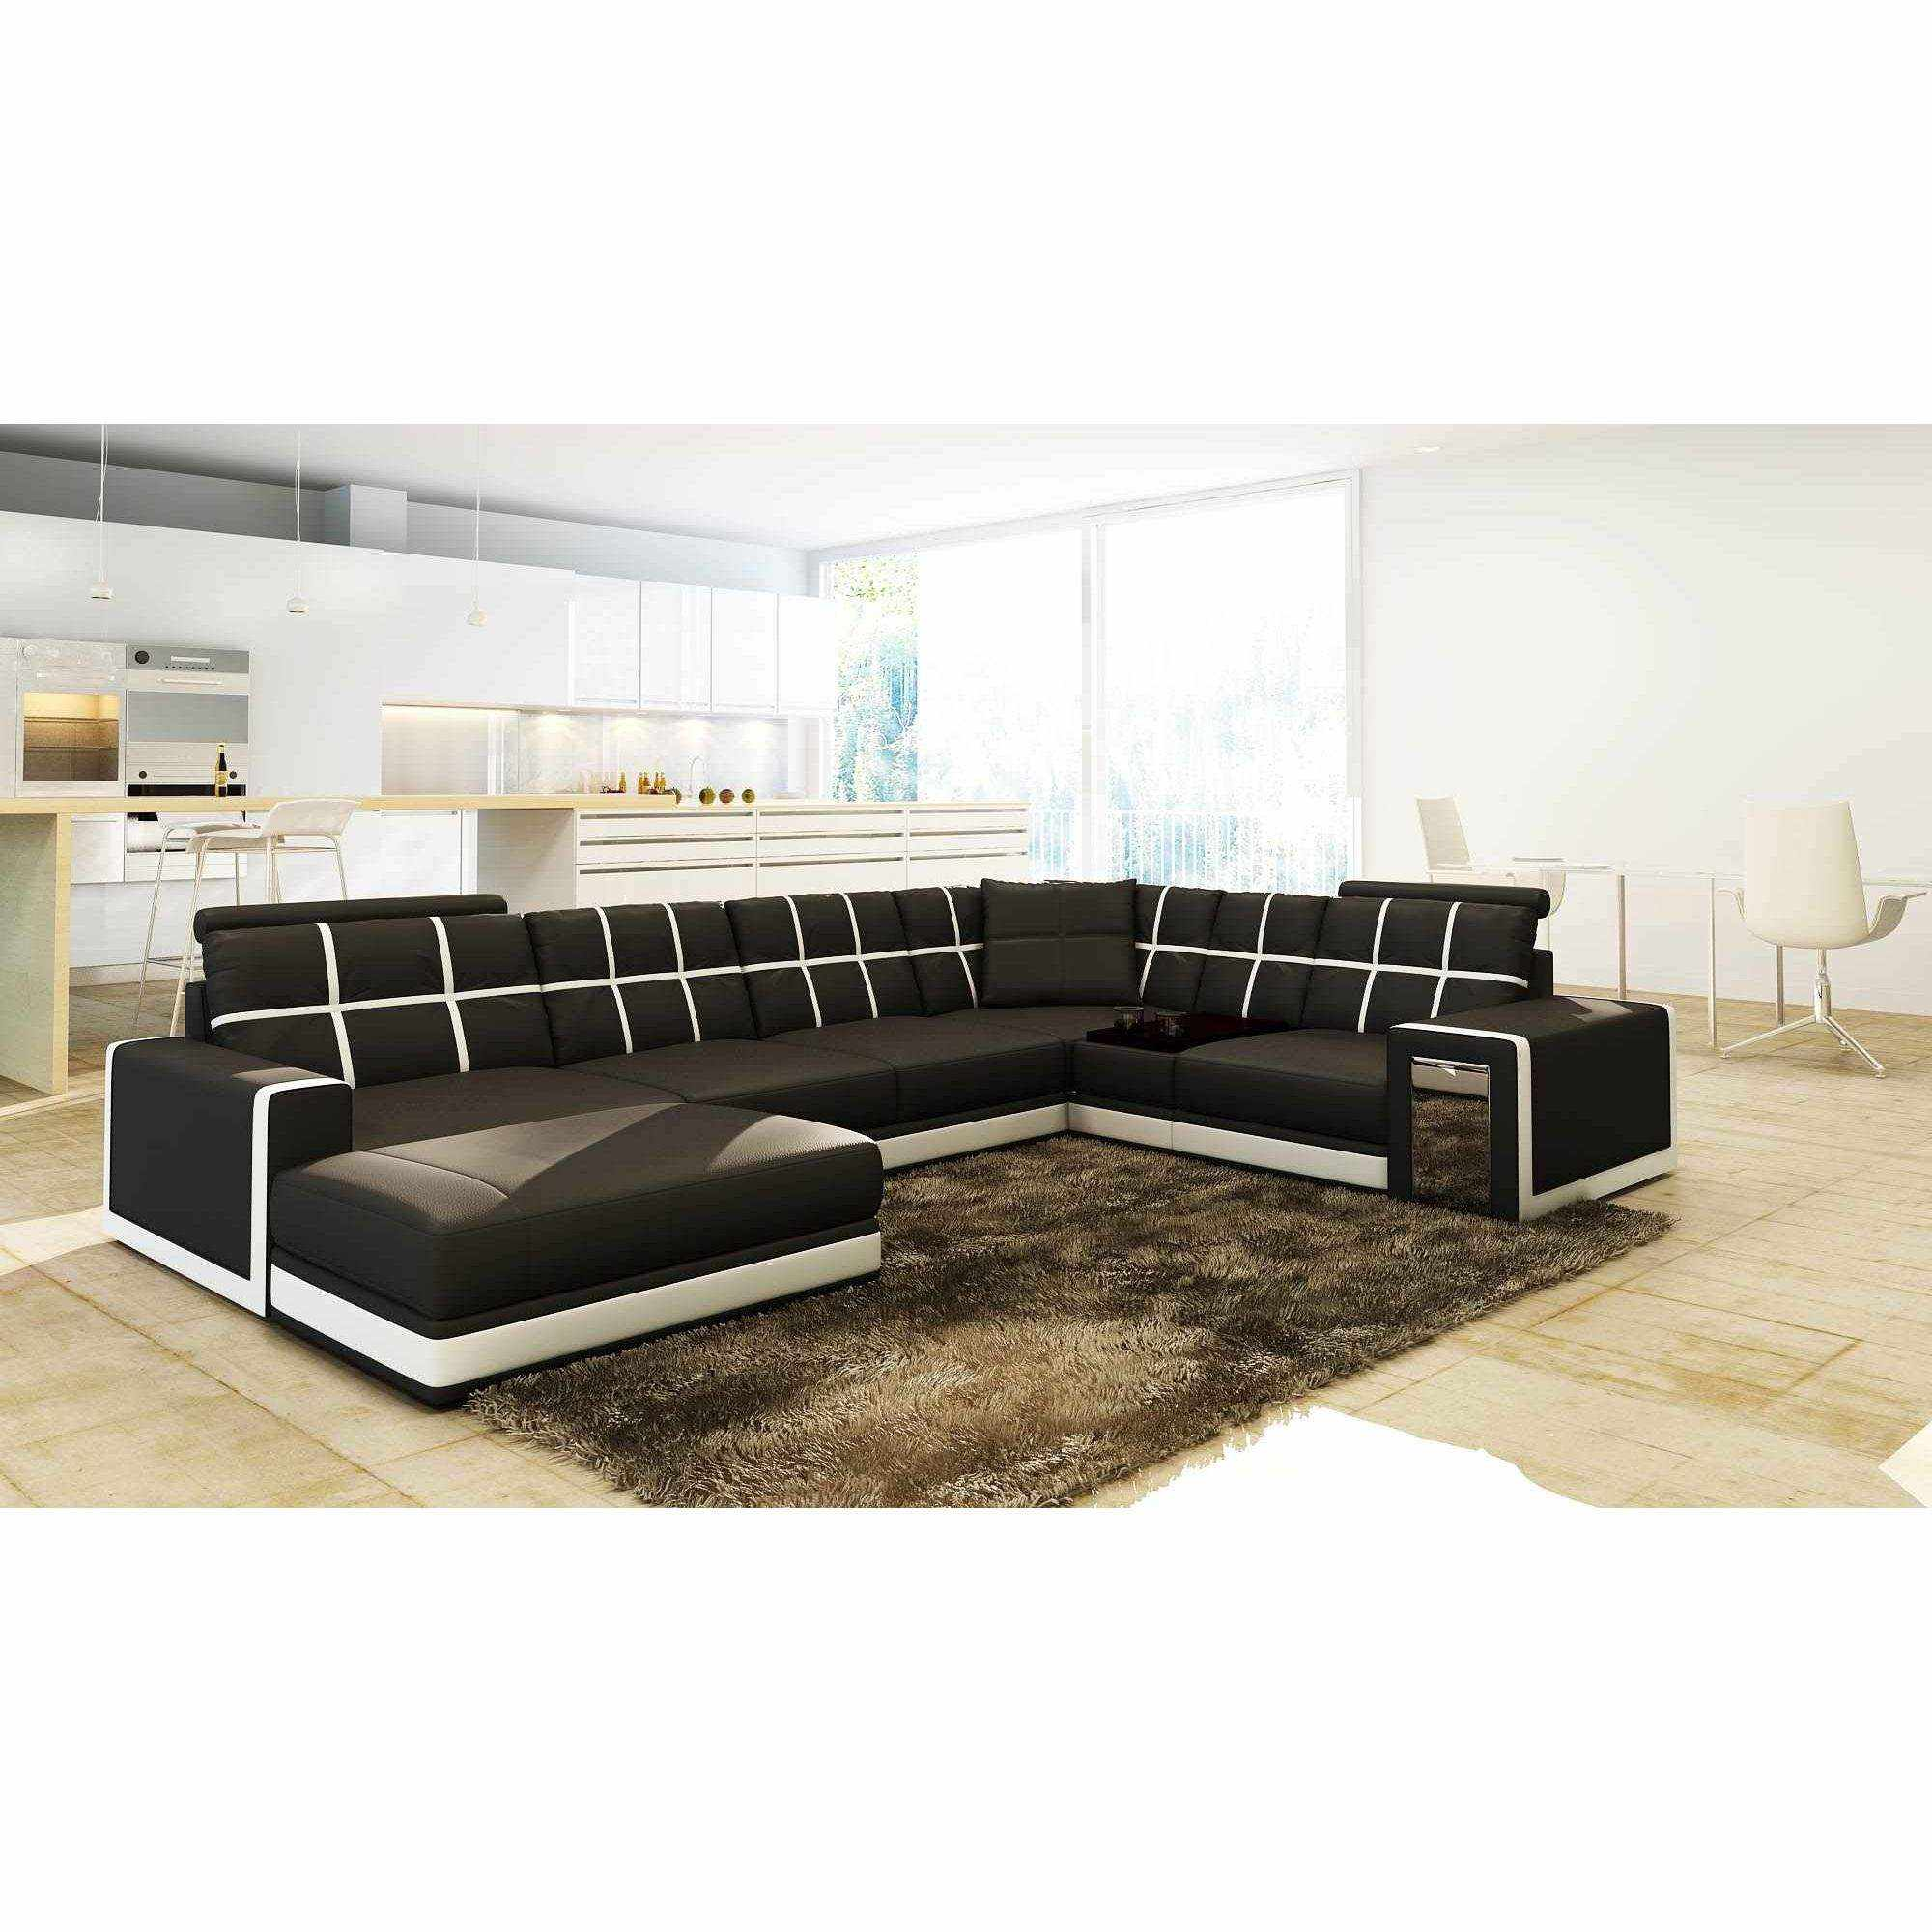 Deco in paris canape d angle panoramique cuir noir et for Canape angle cuir design